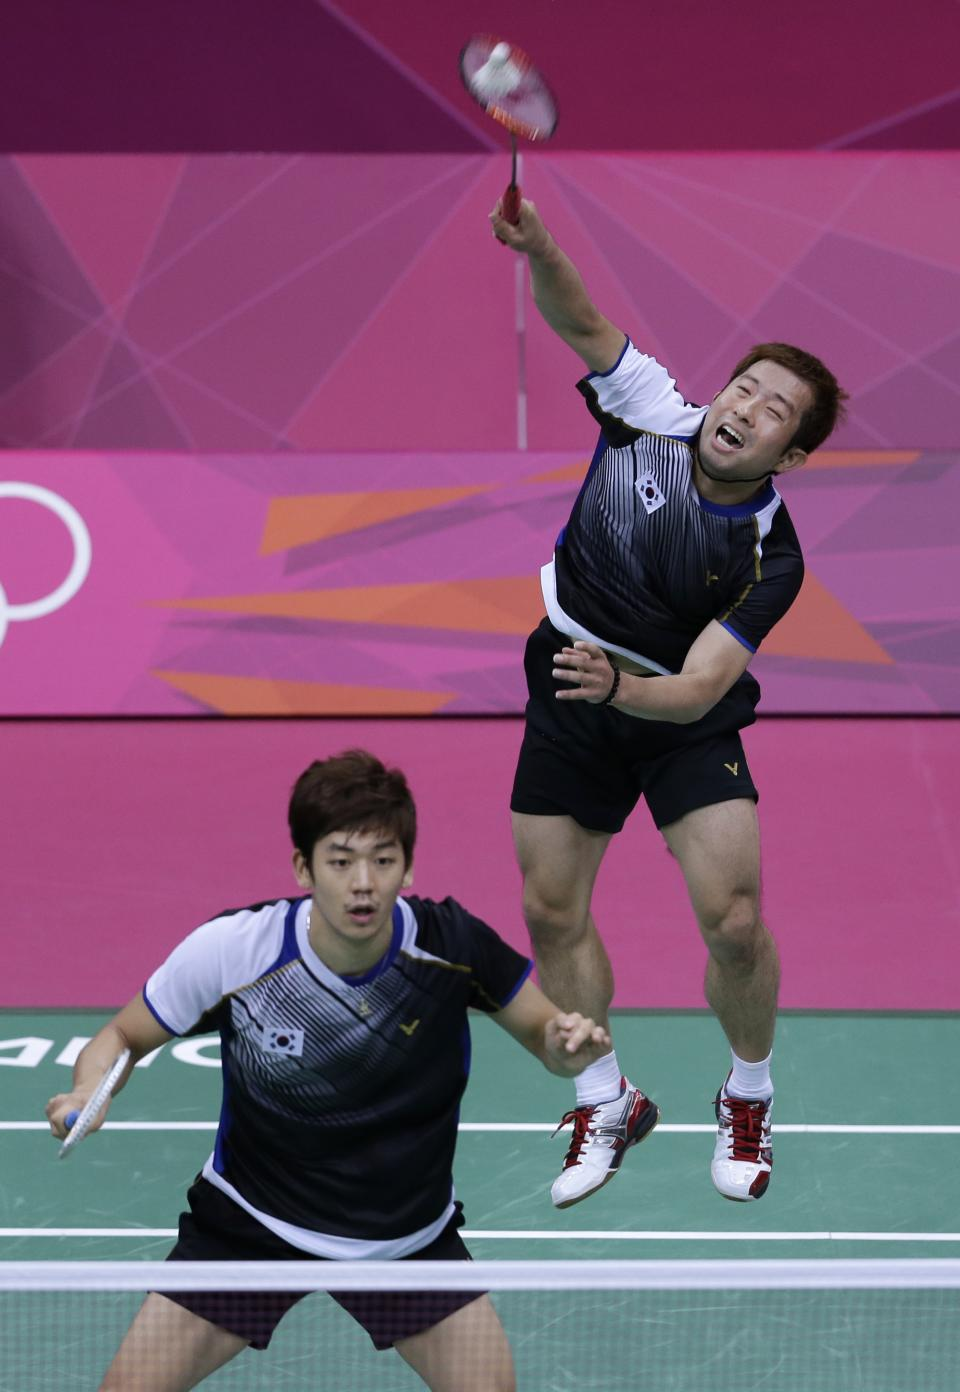 South Korea's Chung Jae-sung, right, and Lee Yong-dae, play against Denmark's Mathias Boe and Carsten Mogensen, unseen, at a men's doubles badminton semifinal match of the 2012 Summer Olympics, Saturday, Aug. 4, 2012, in London. (AP Photo/Saurabh Das)